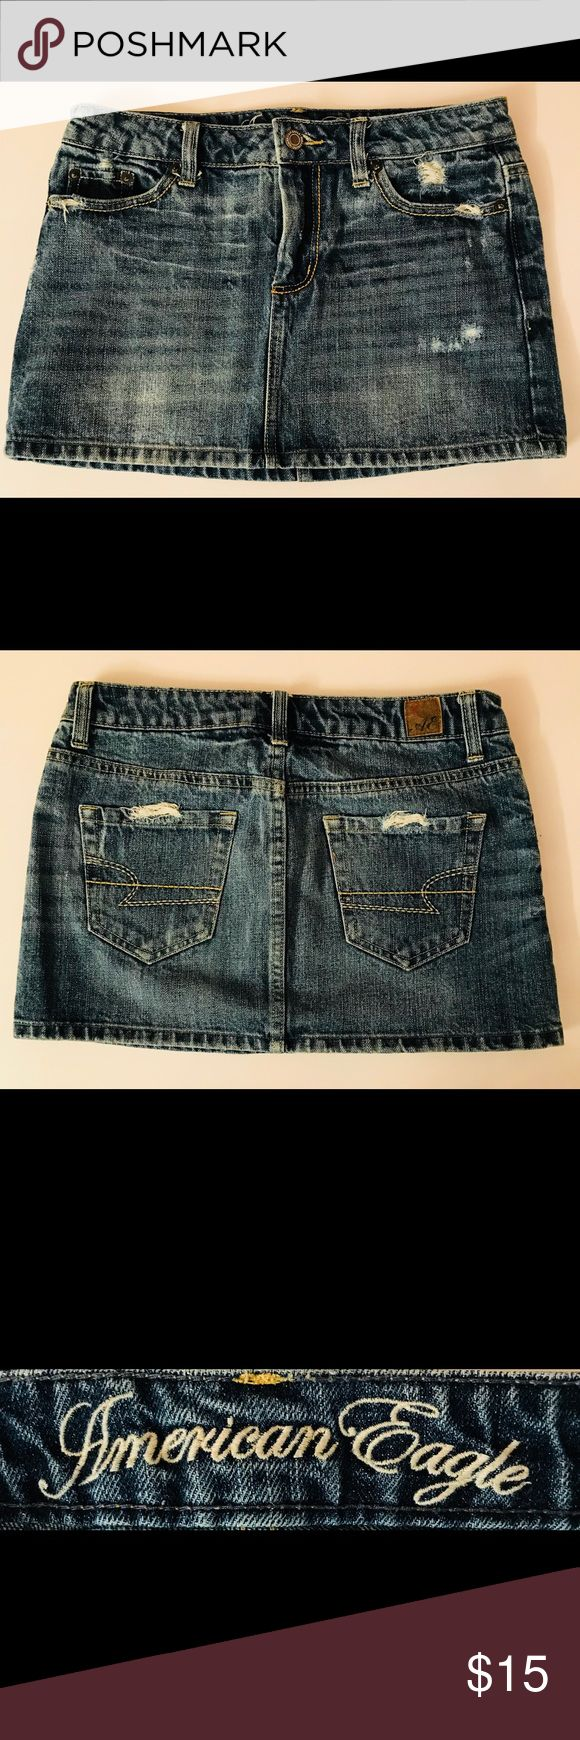 """American Eagle Jean Skirt Very cute American Eagle Jean Skirt. Low rise, zip up with button, 4 functional pockets. Like new, worn twice, no stains.   Measurements Size: 2  Length: 11""""  Waist:25.5 Hip 35""""  Material: 100% cotton American Eagle Outfitters Skirts Mini"""